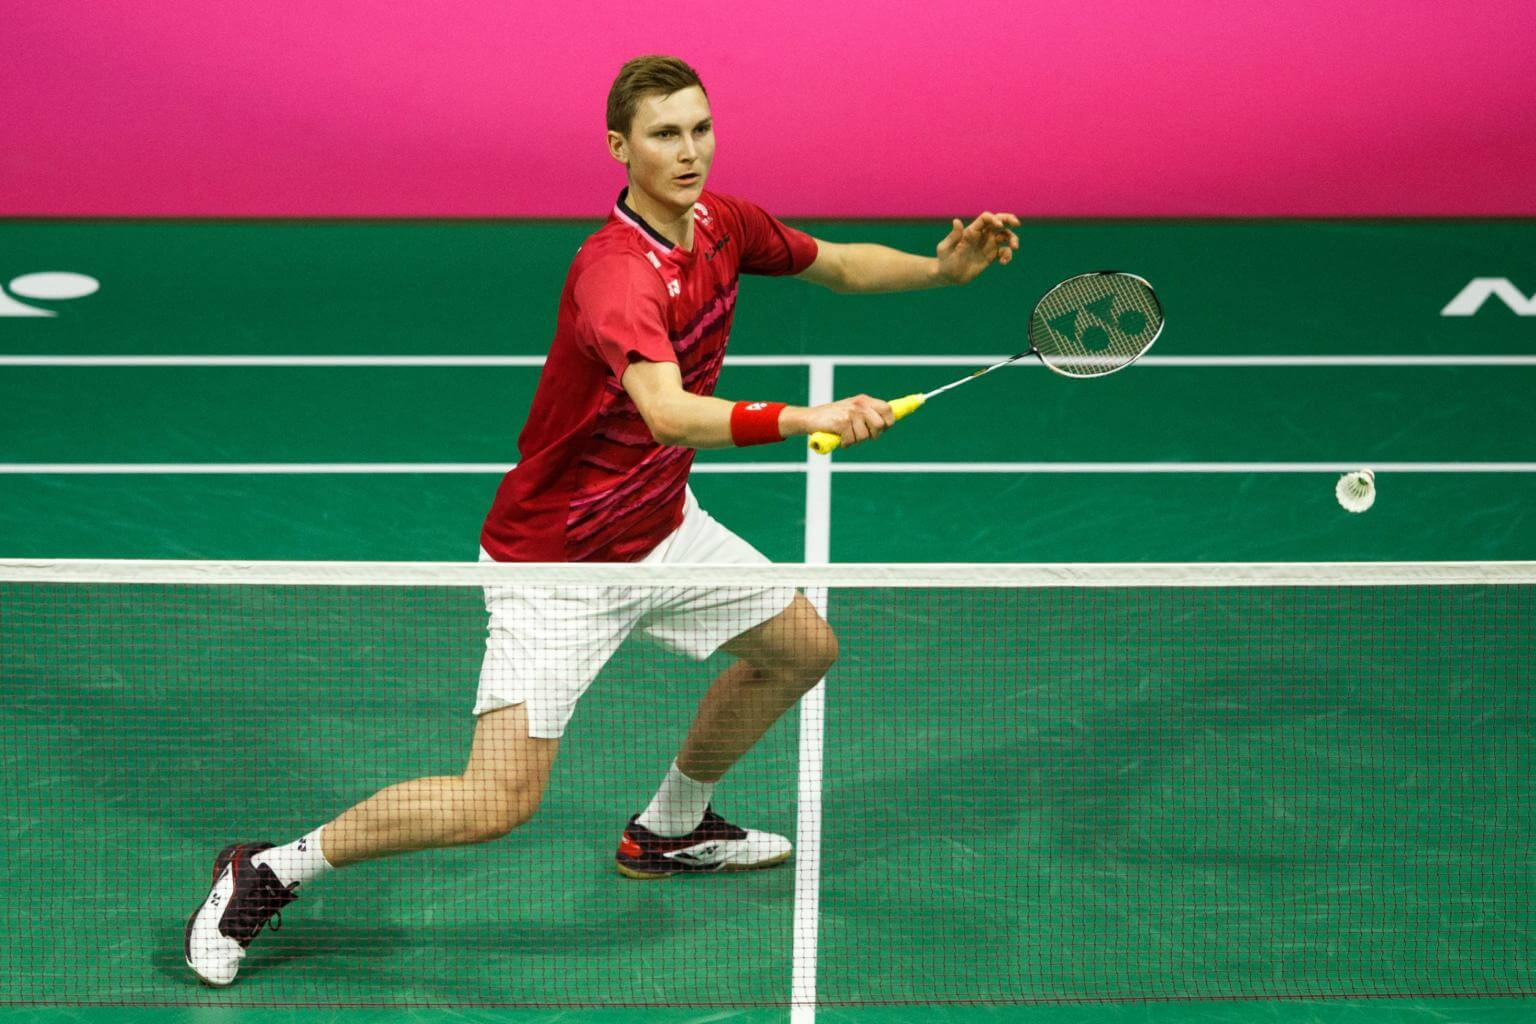 Viktor Axelsen's Badminton Racket in 2020